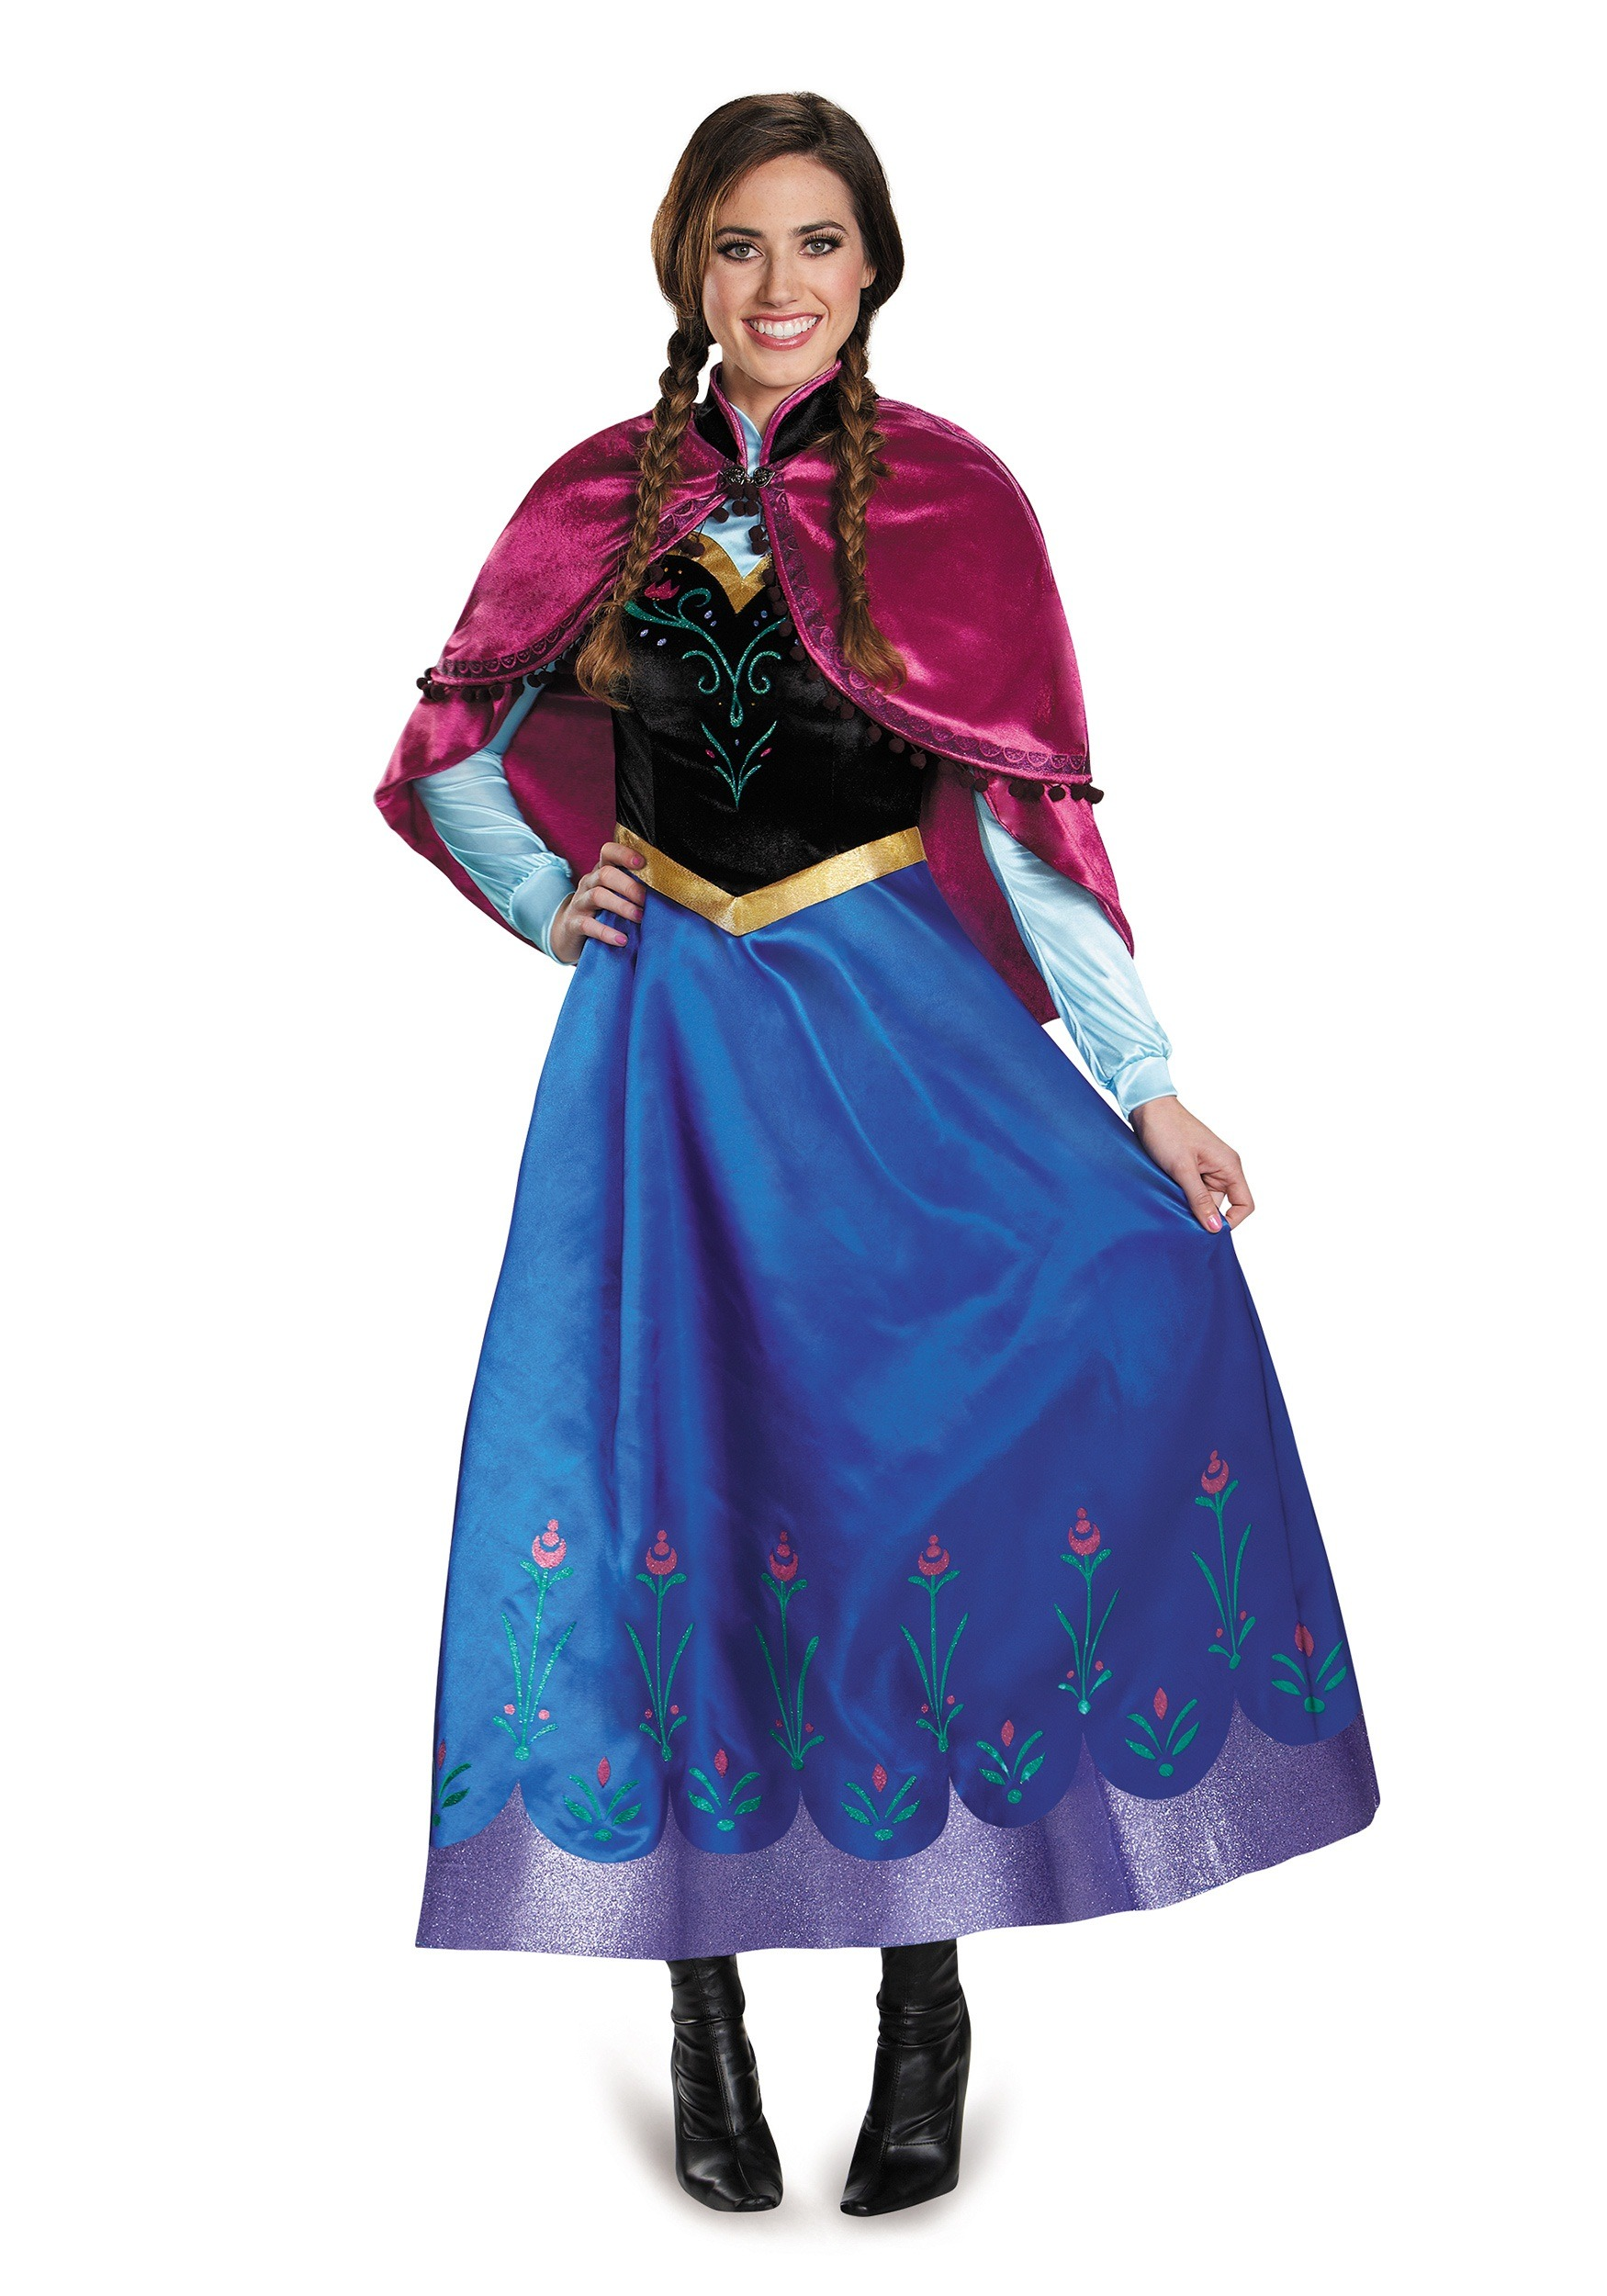 Frozen Traveling Anna Prestige Costume  sc 1 st  Halloween Costumes UK & Adult Disney Costumes - Sexy Disney Princess Costume